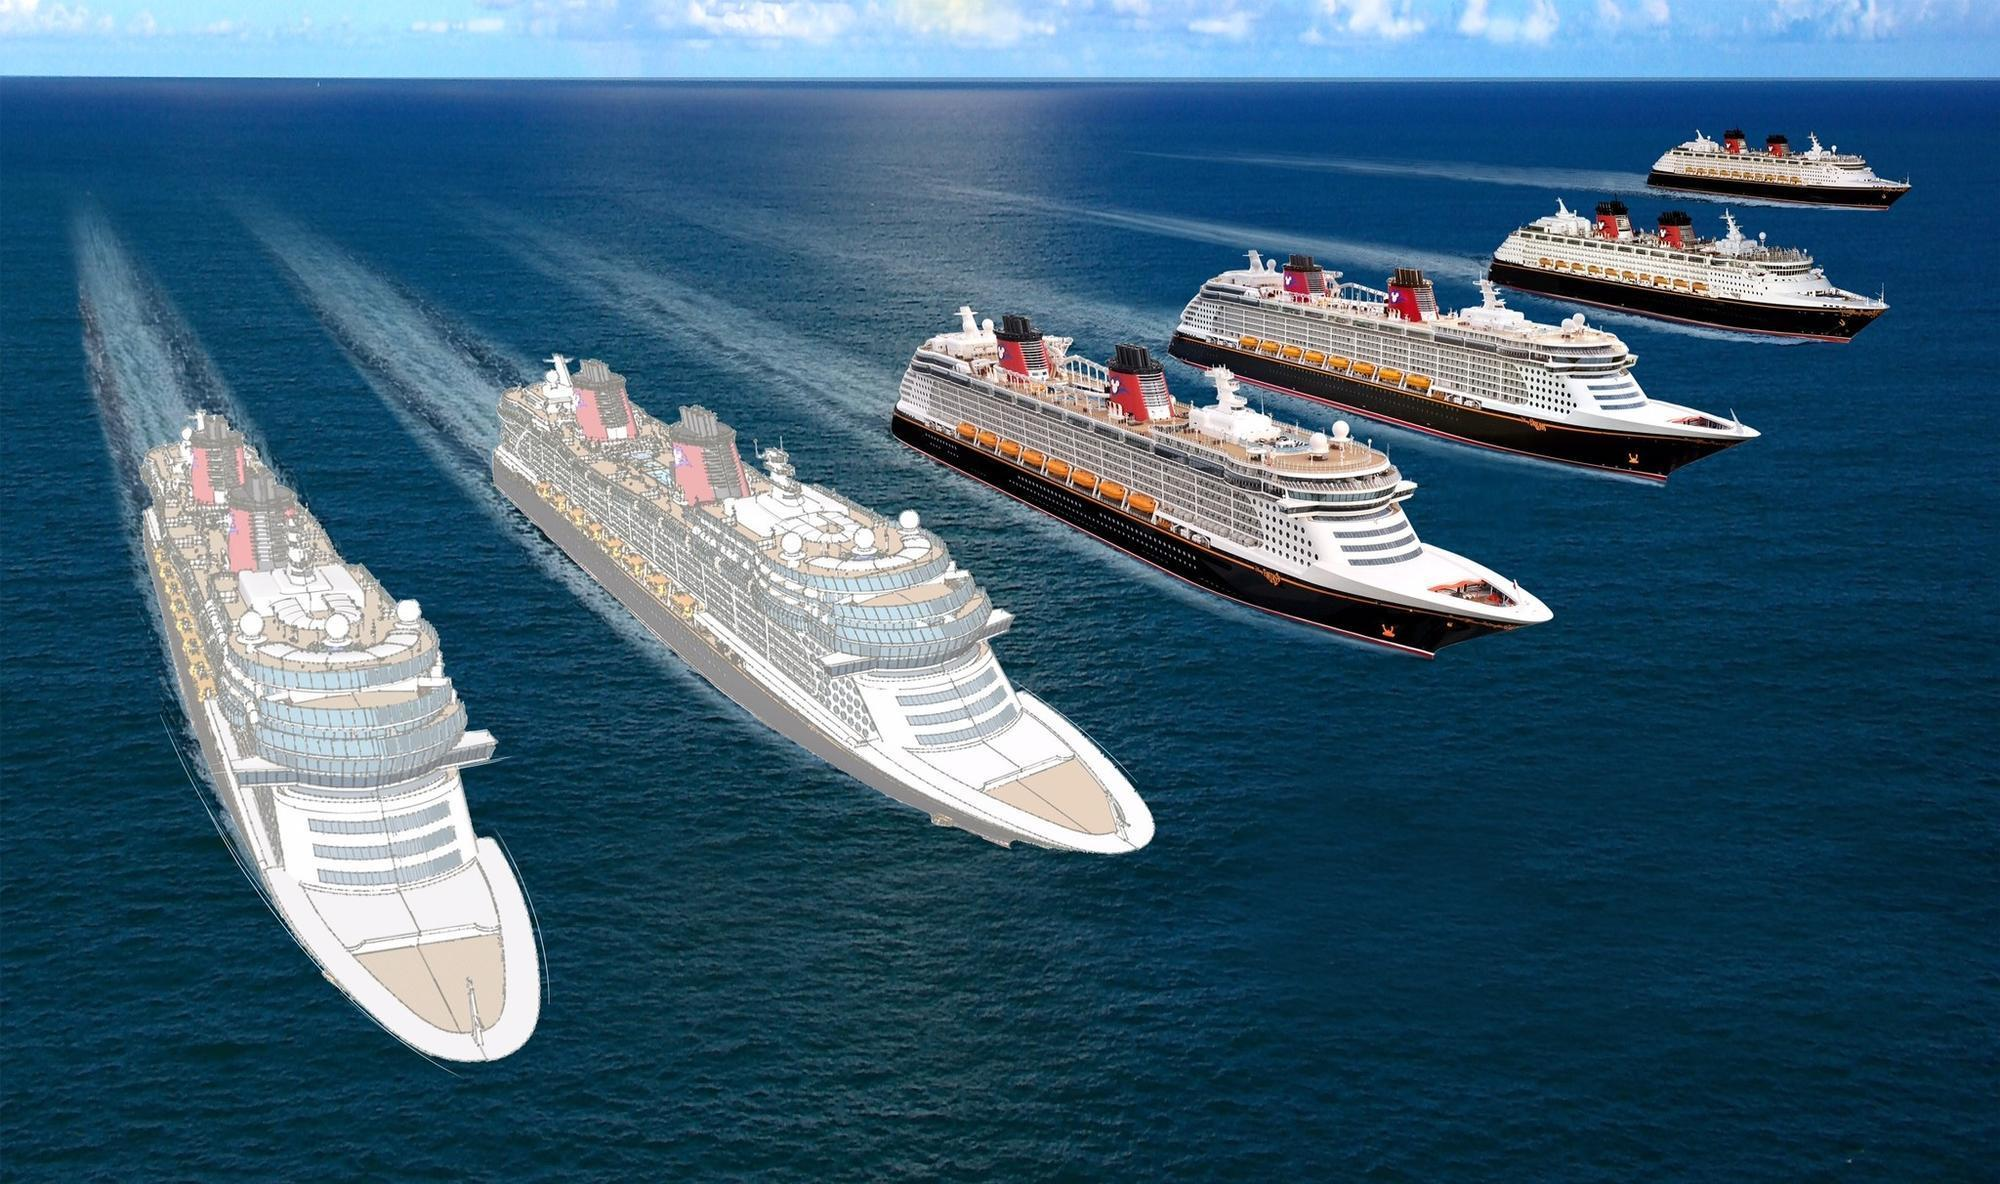 Disney Cruise Line adds Greece to summer 2020 plans, expands Disney Fantasy options